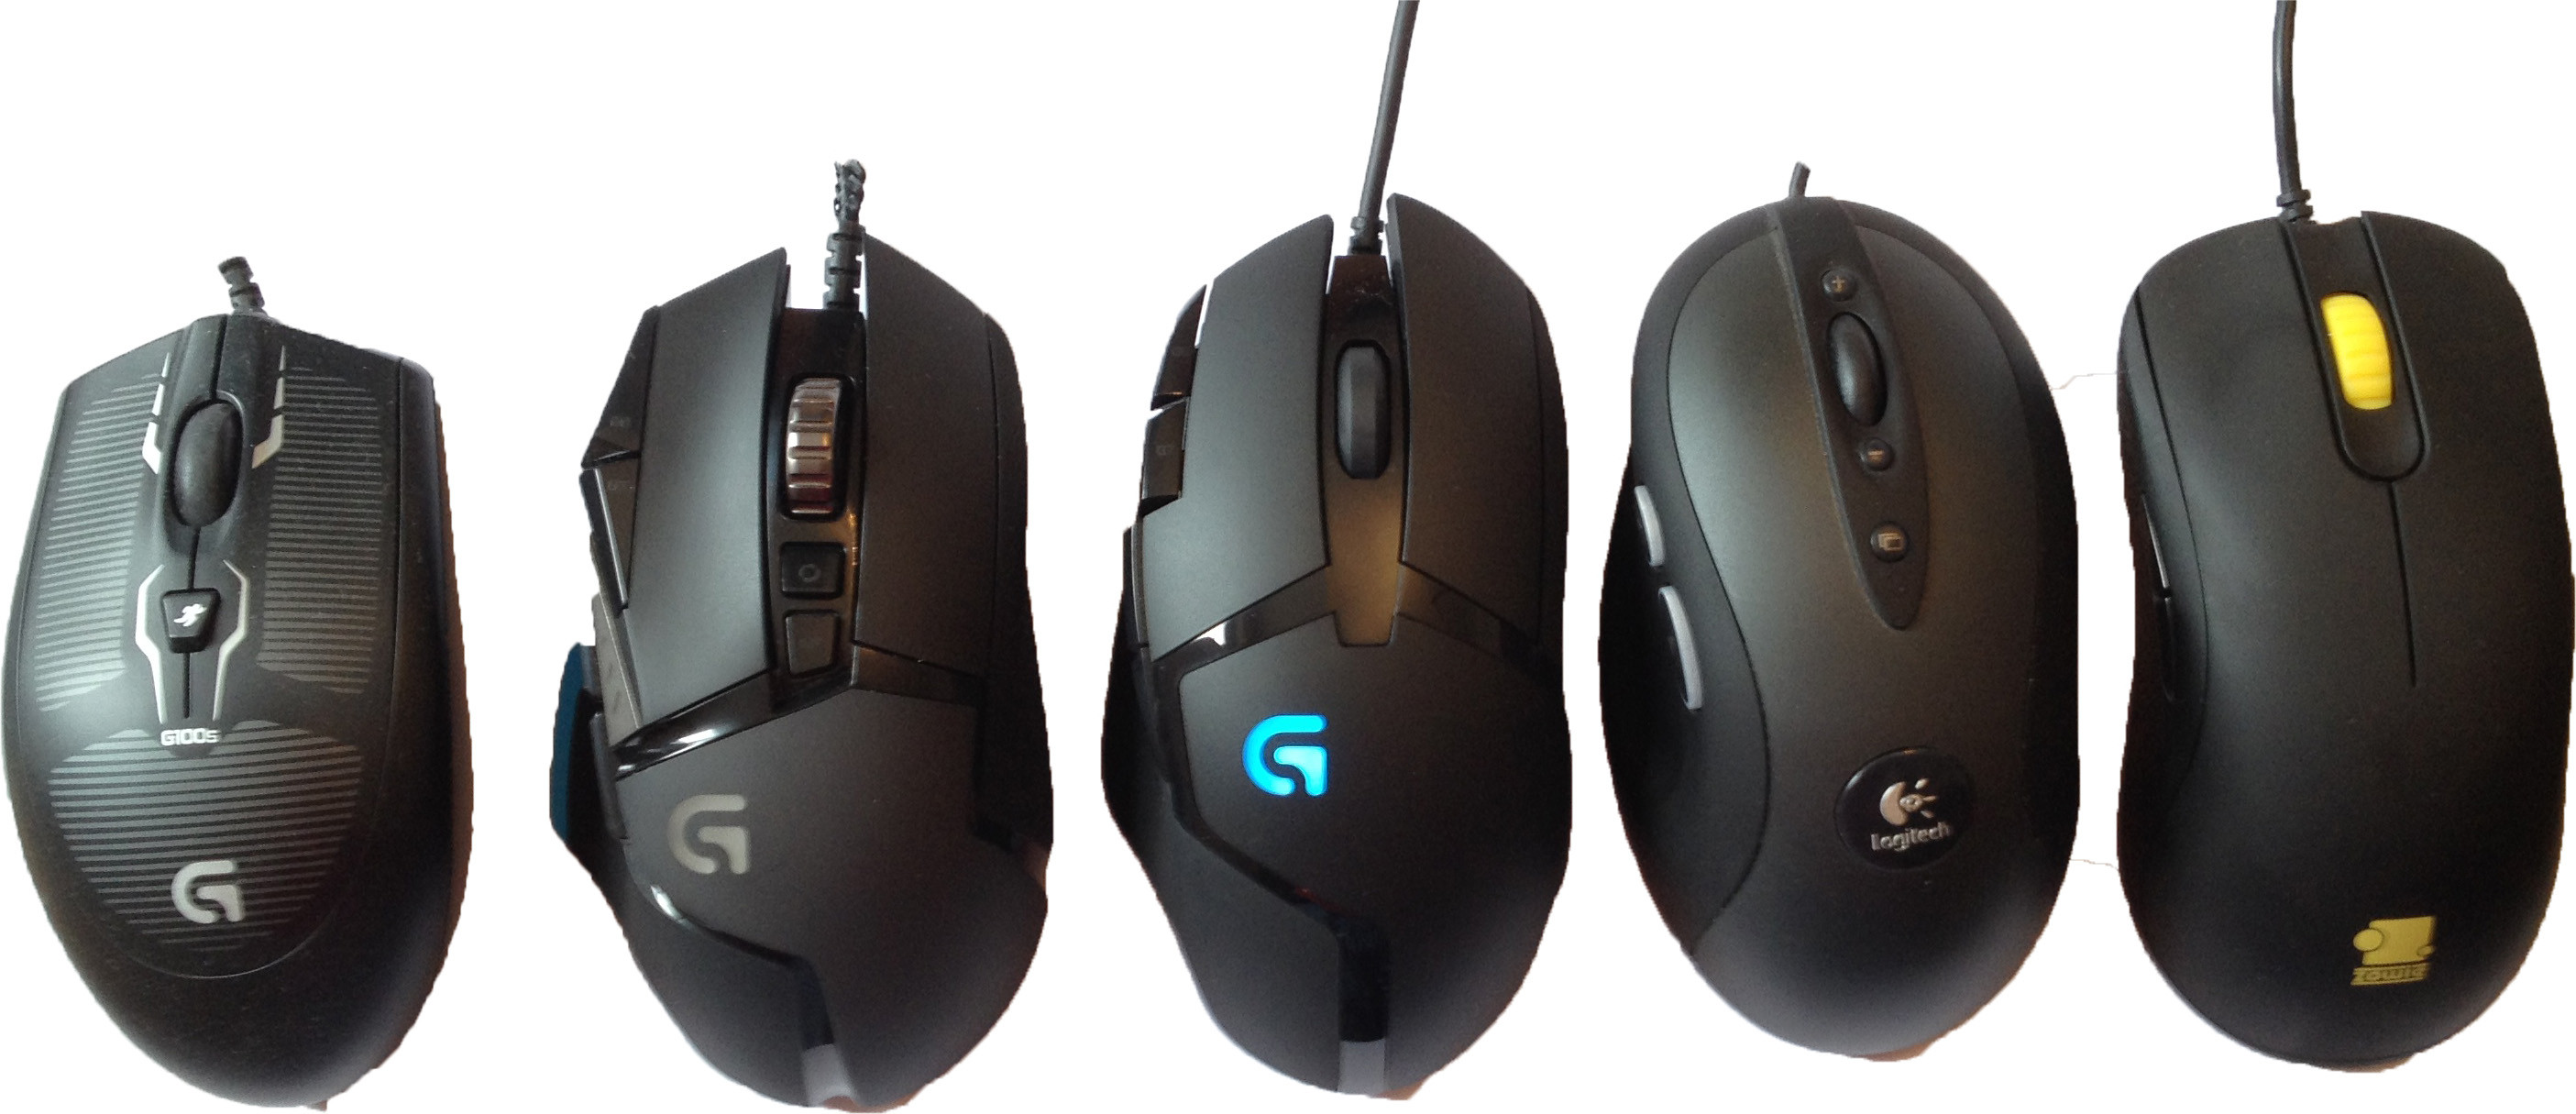 Logitech G402 Hyperion Fury Gaming Mouse review - by Ino